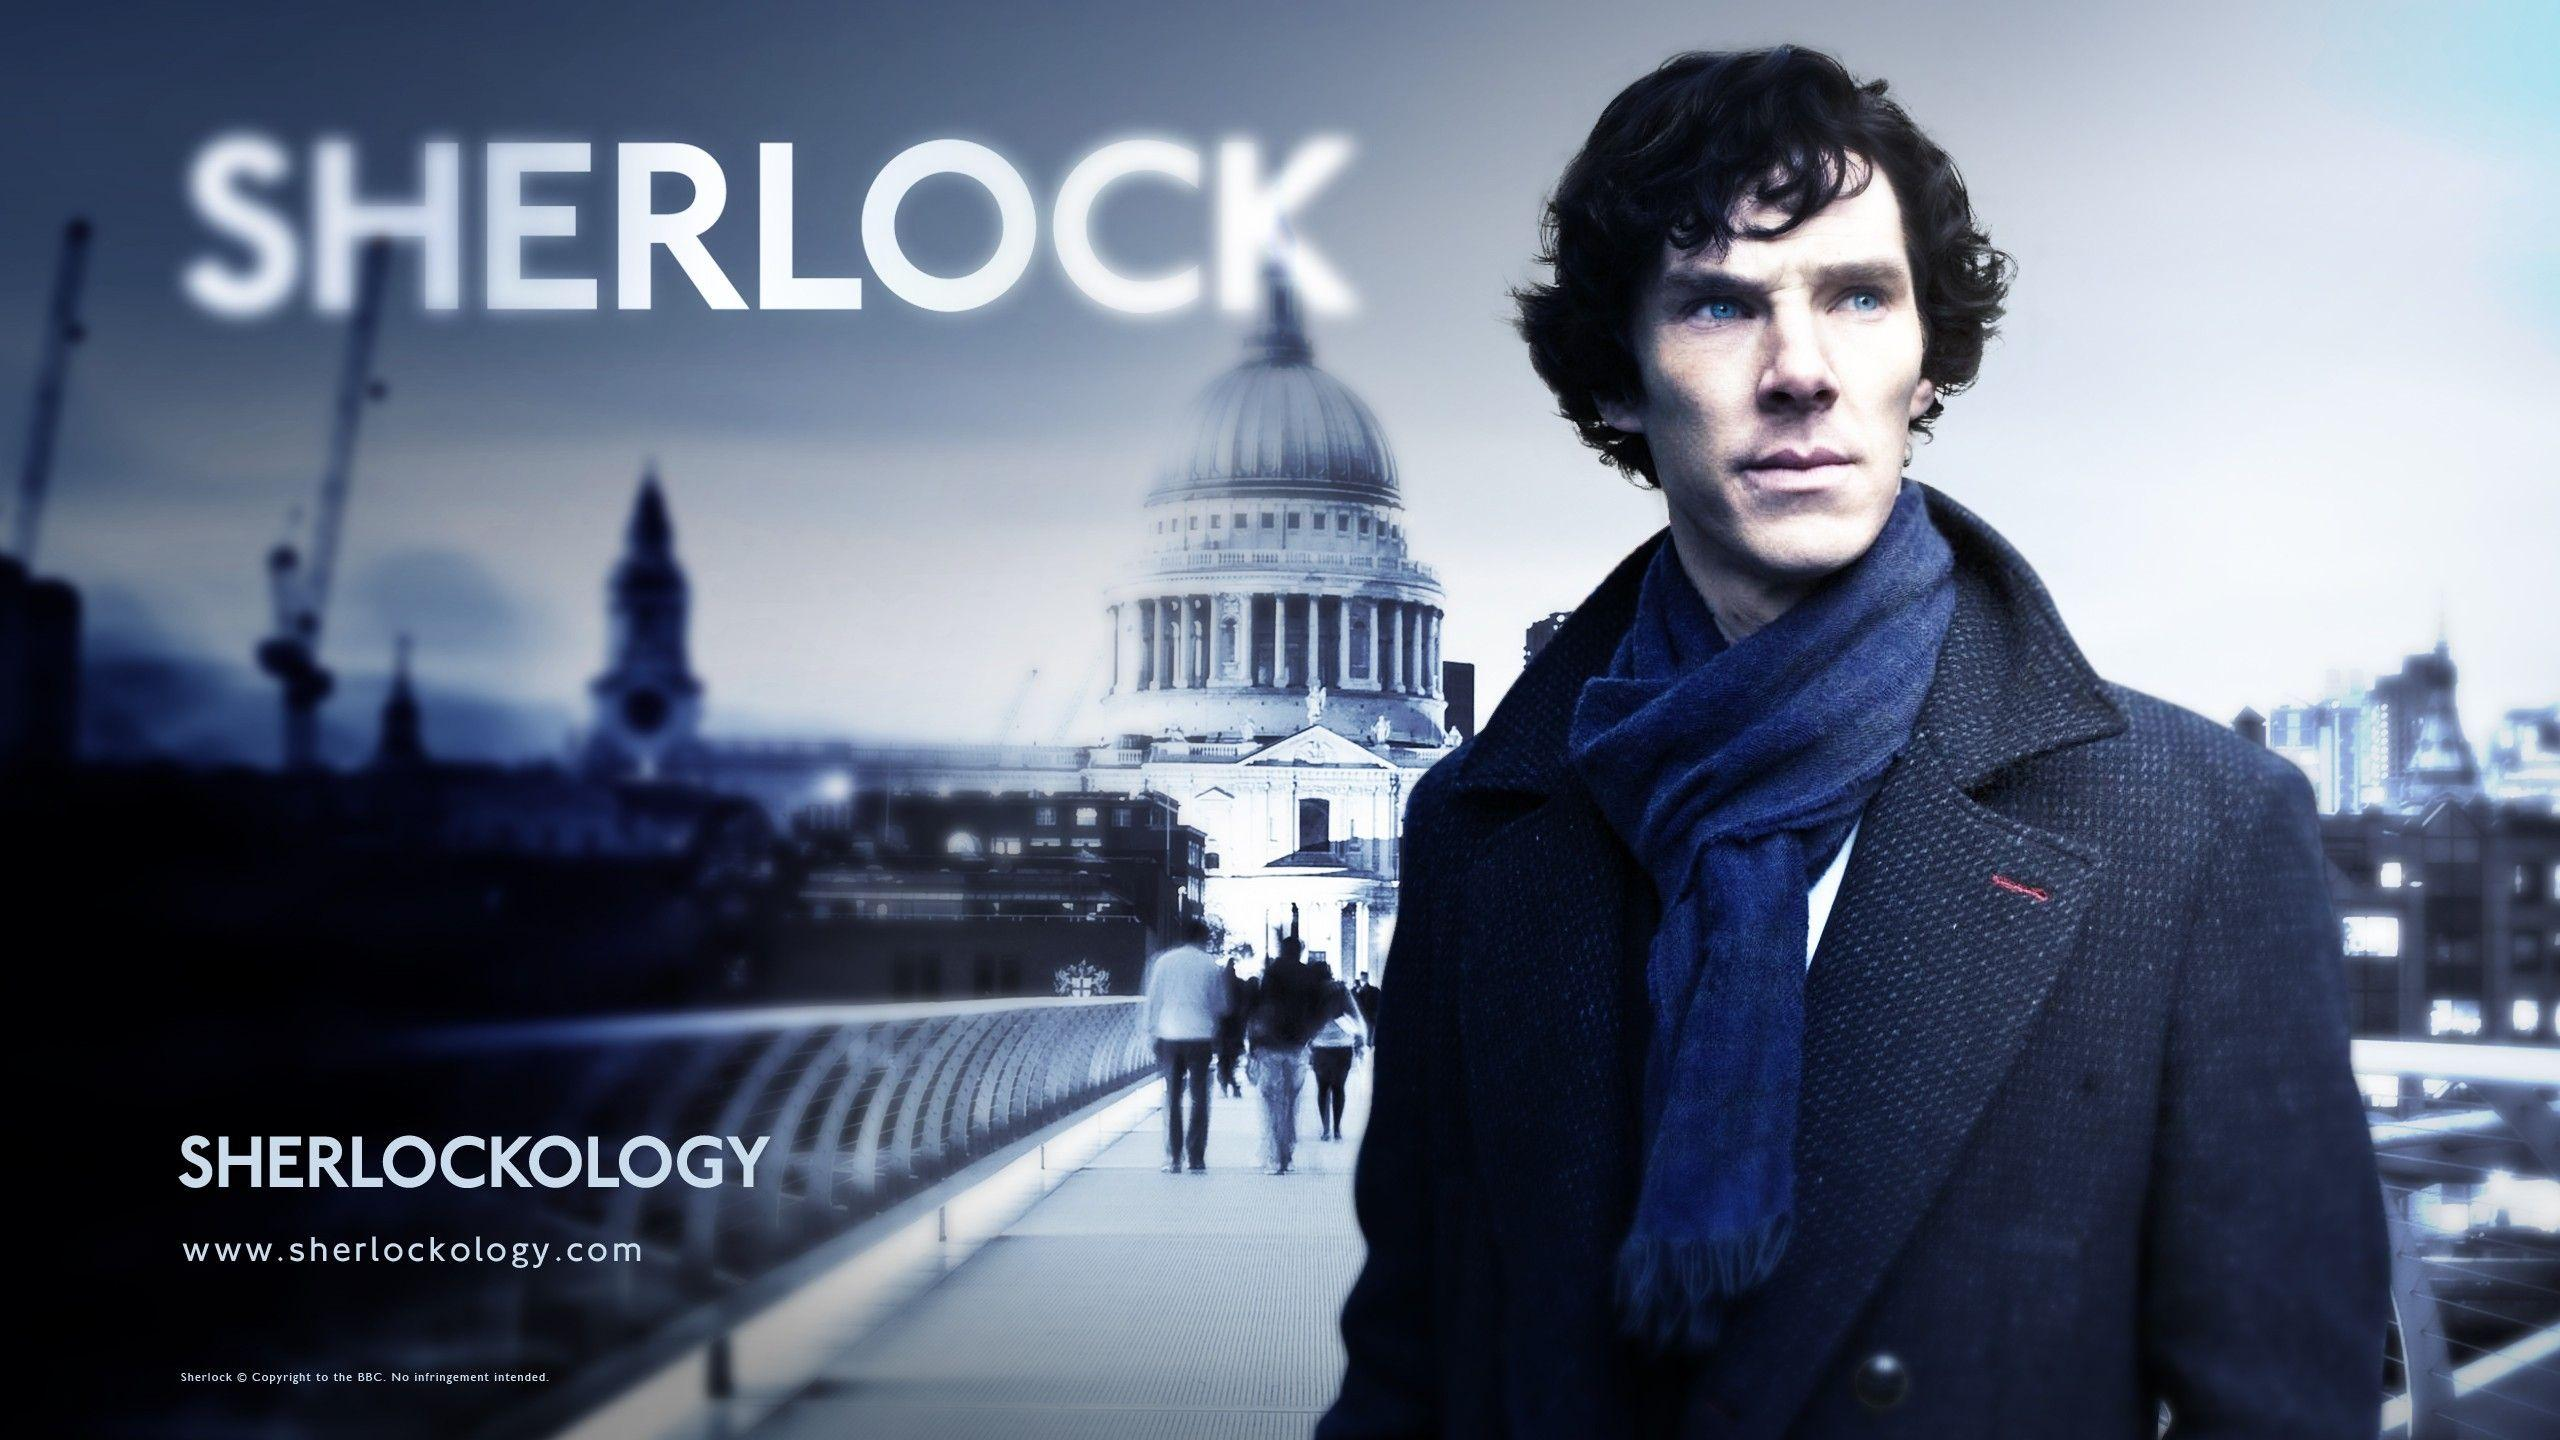 Sherlock Holmes Bbc Wallpapers HD - Wallpaper Cave